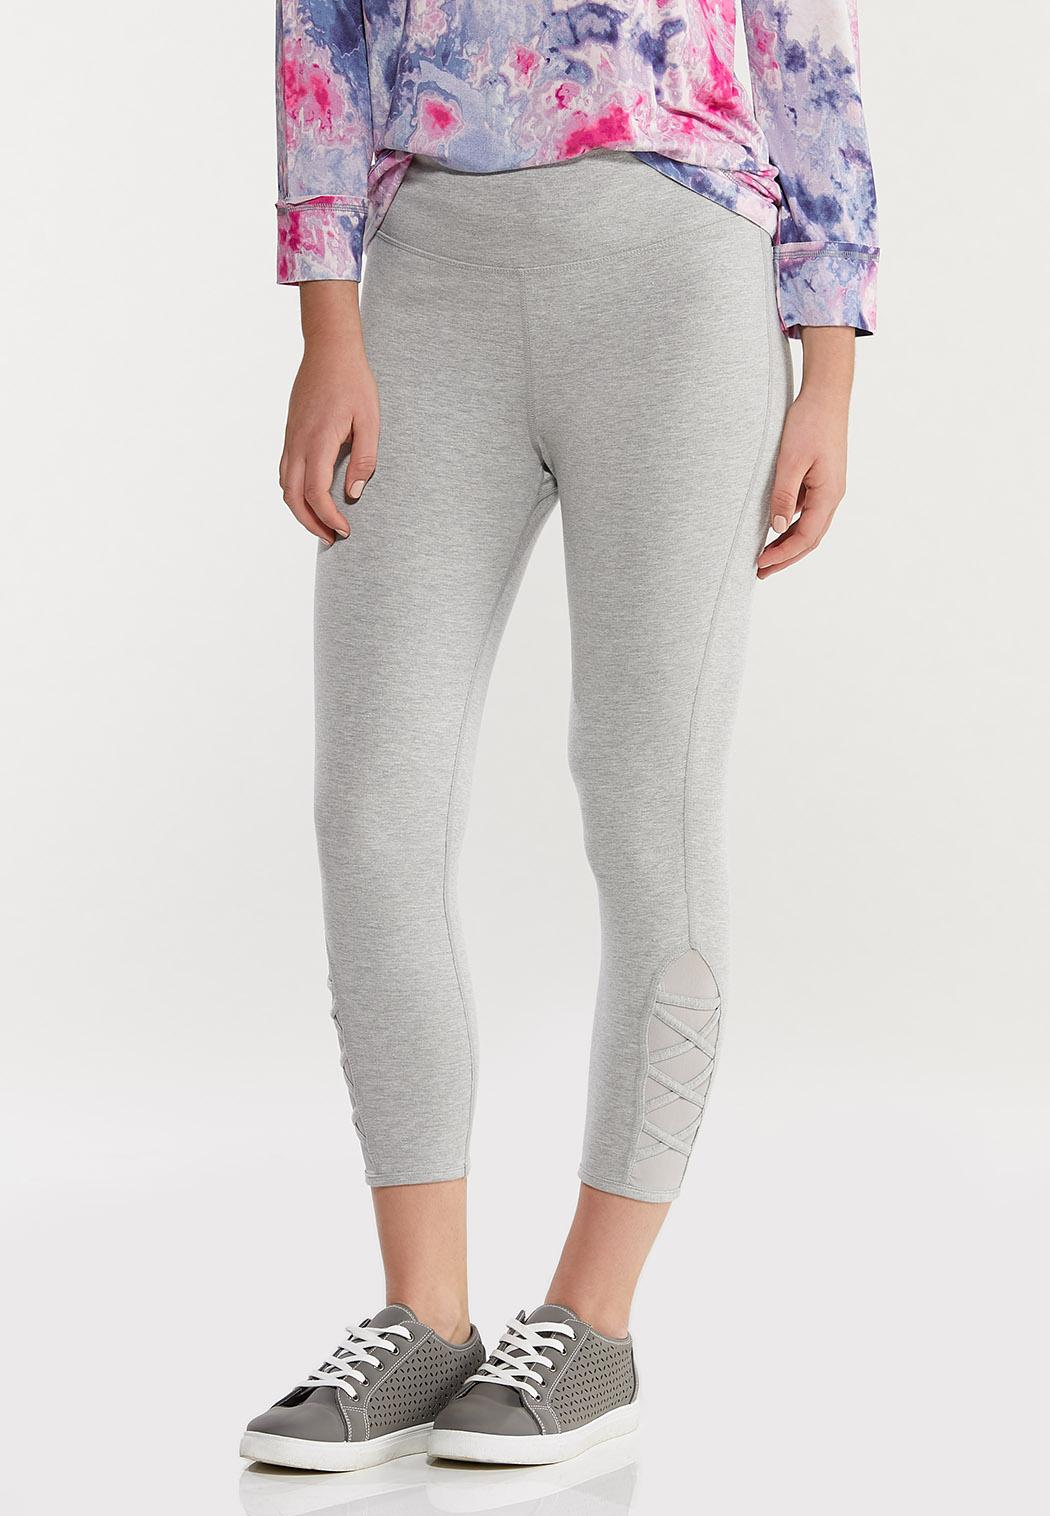 Cropped Criss Cross Leggings